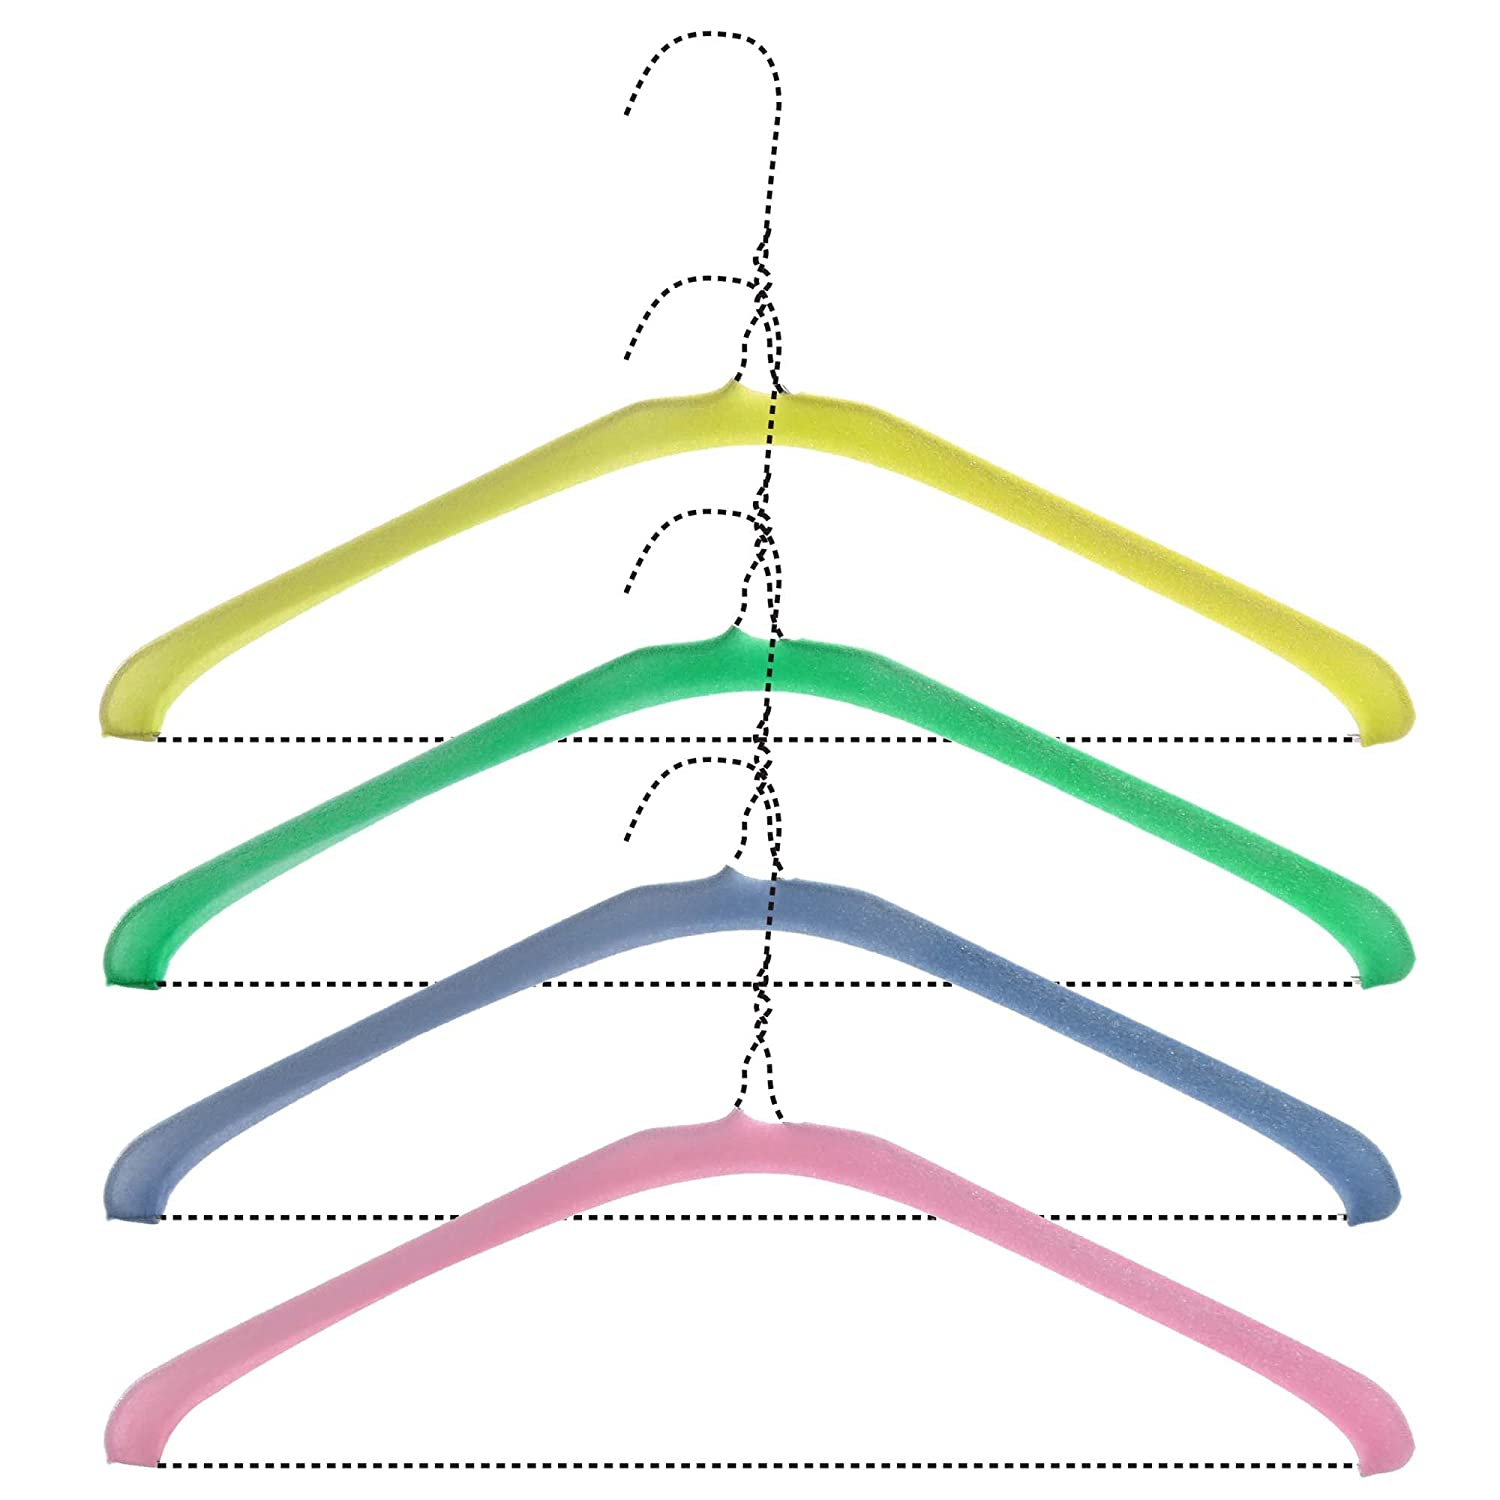 HANGERWORLD 50 Foam Wire Hanger Covers Garment Protector Shoulder Guards Non Slip Dry Cleaning Laundry. CC-FOAMCOVERS